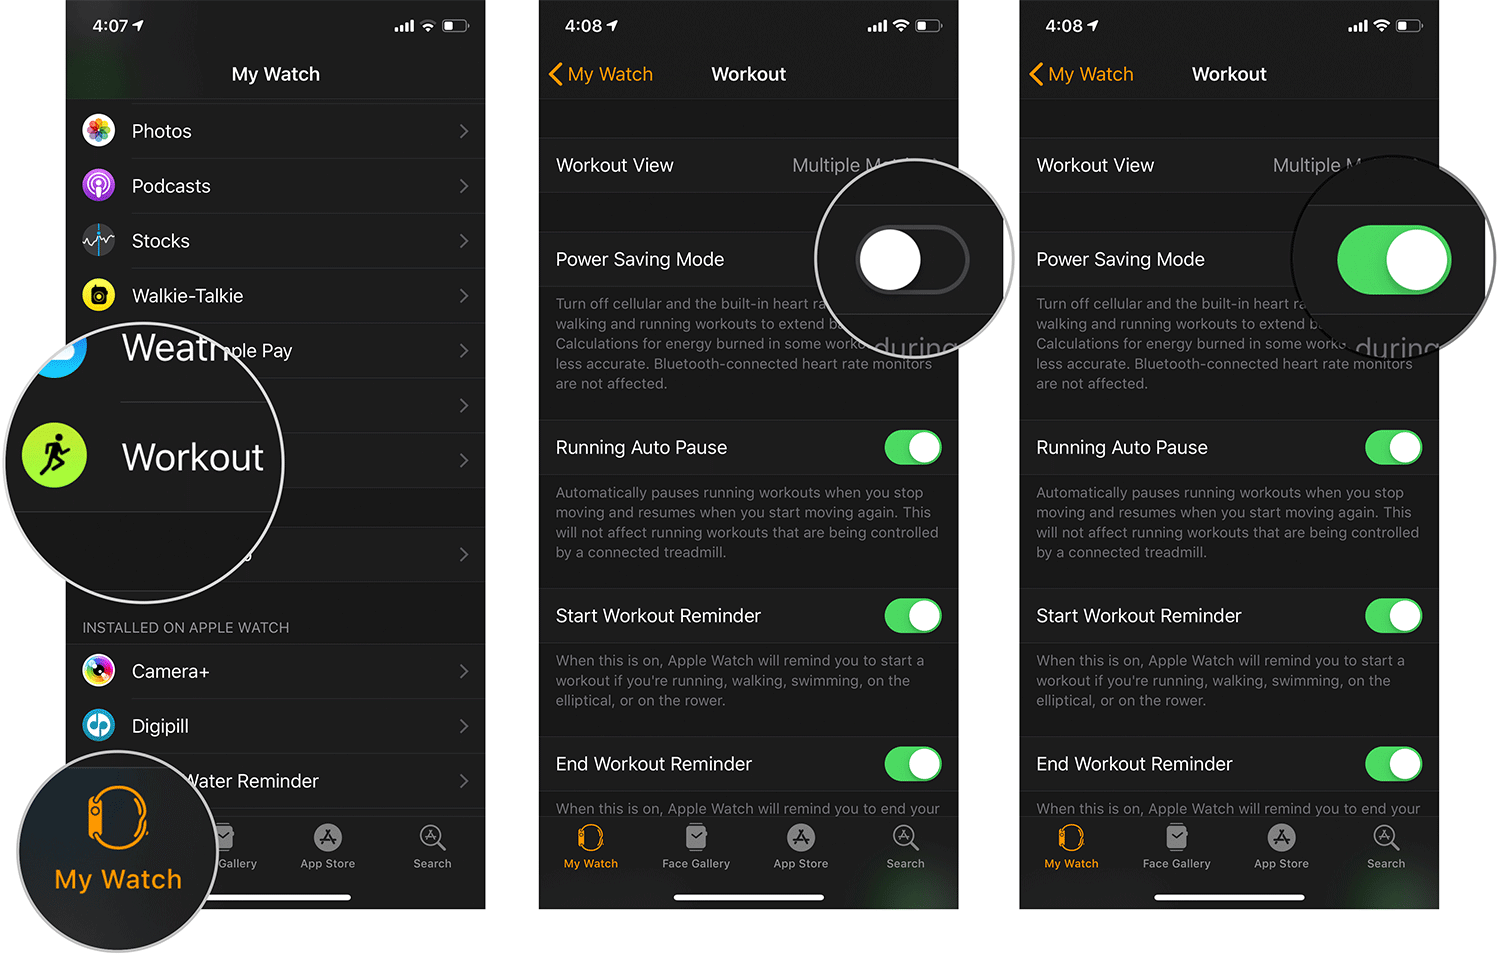 Enable Power Saving Mode in Workout App from iPhone